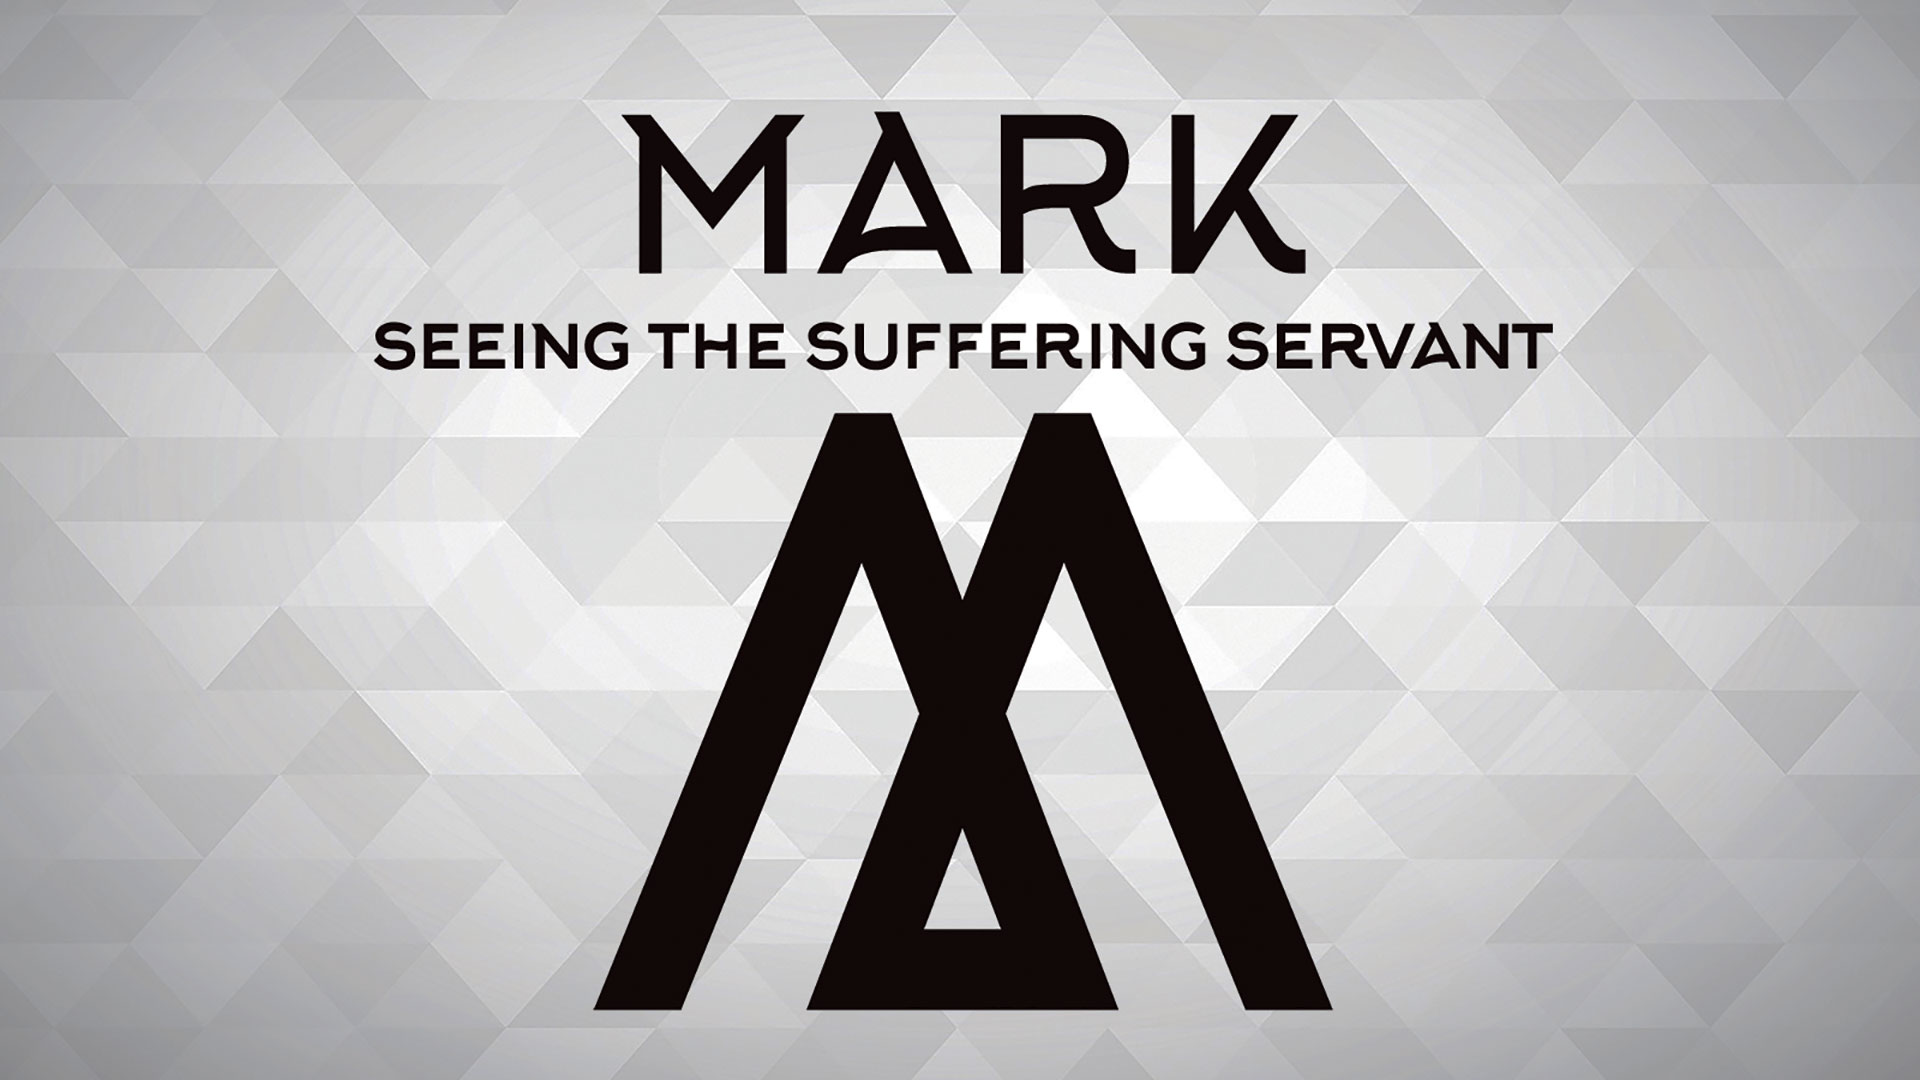 Series: Mark, Seeing the Suffering Servant